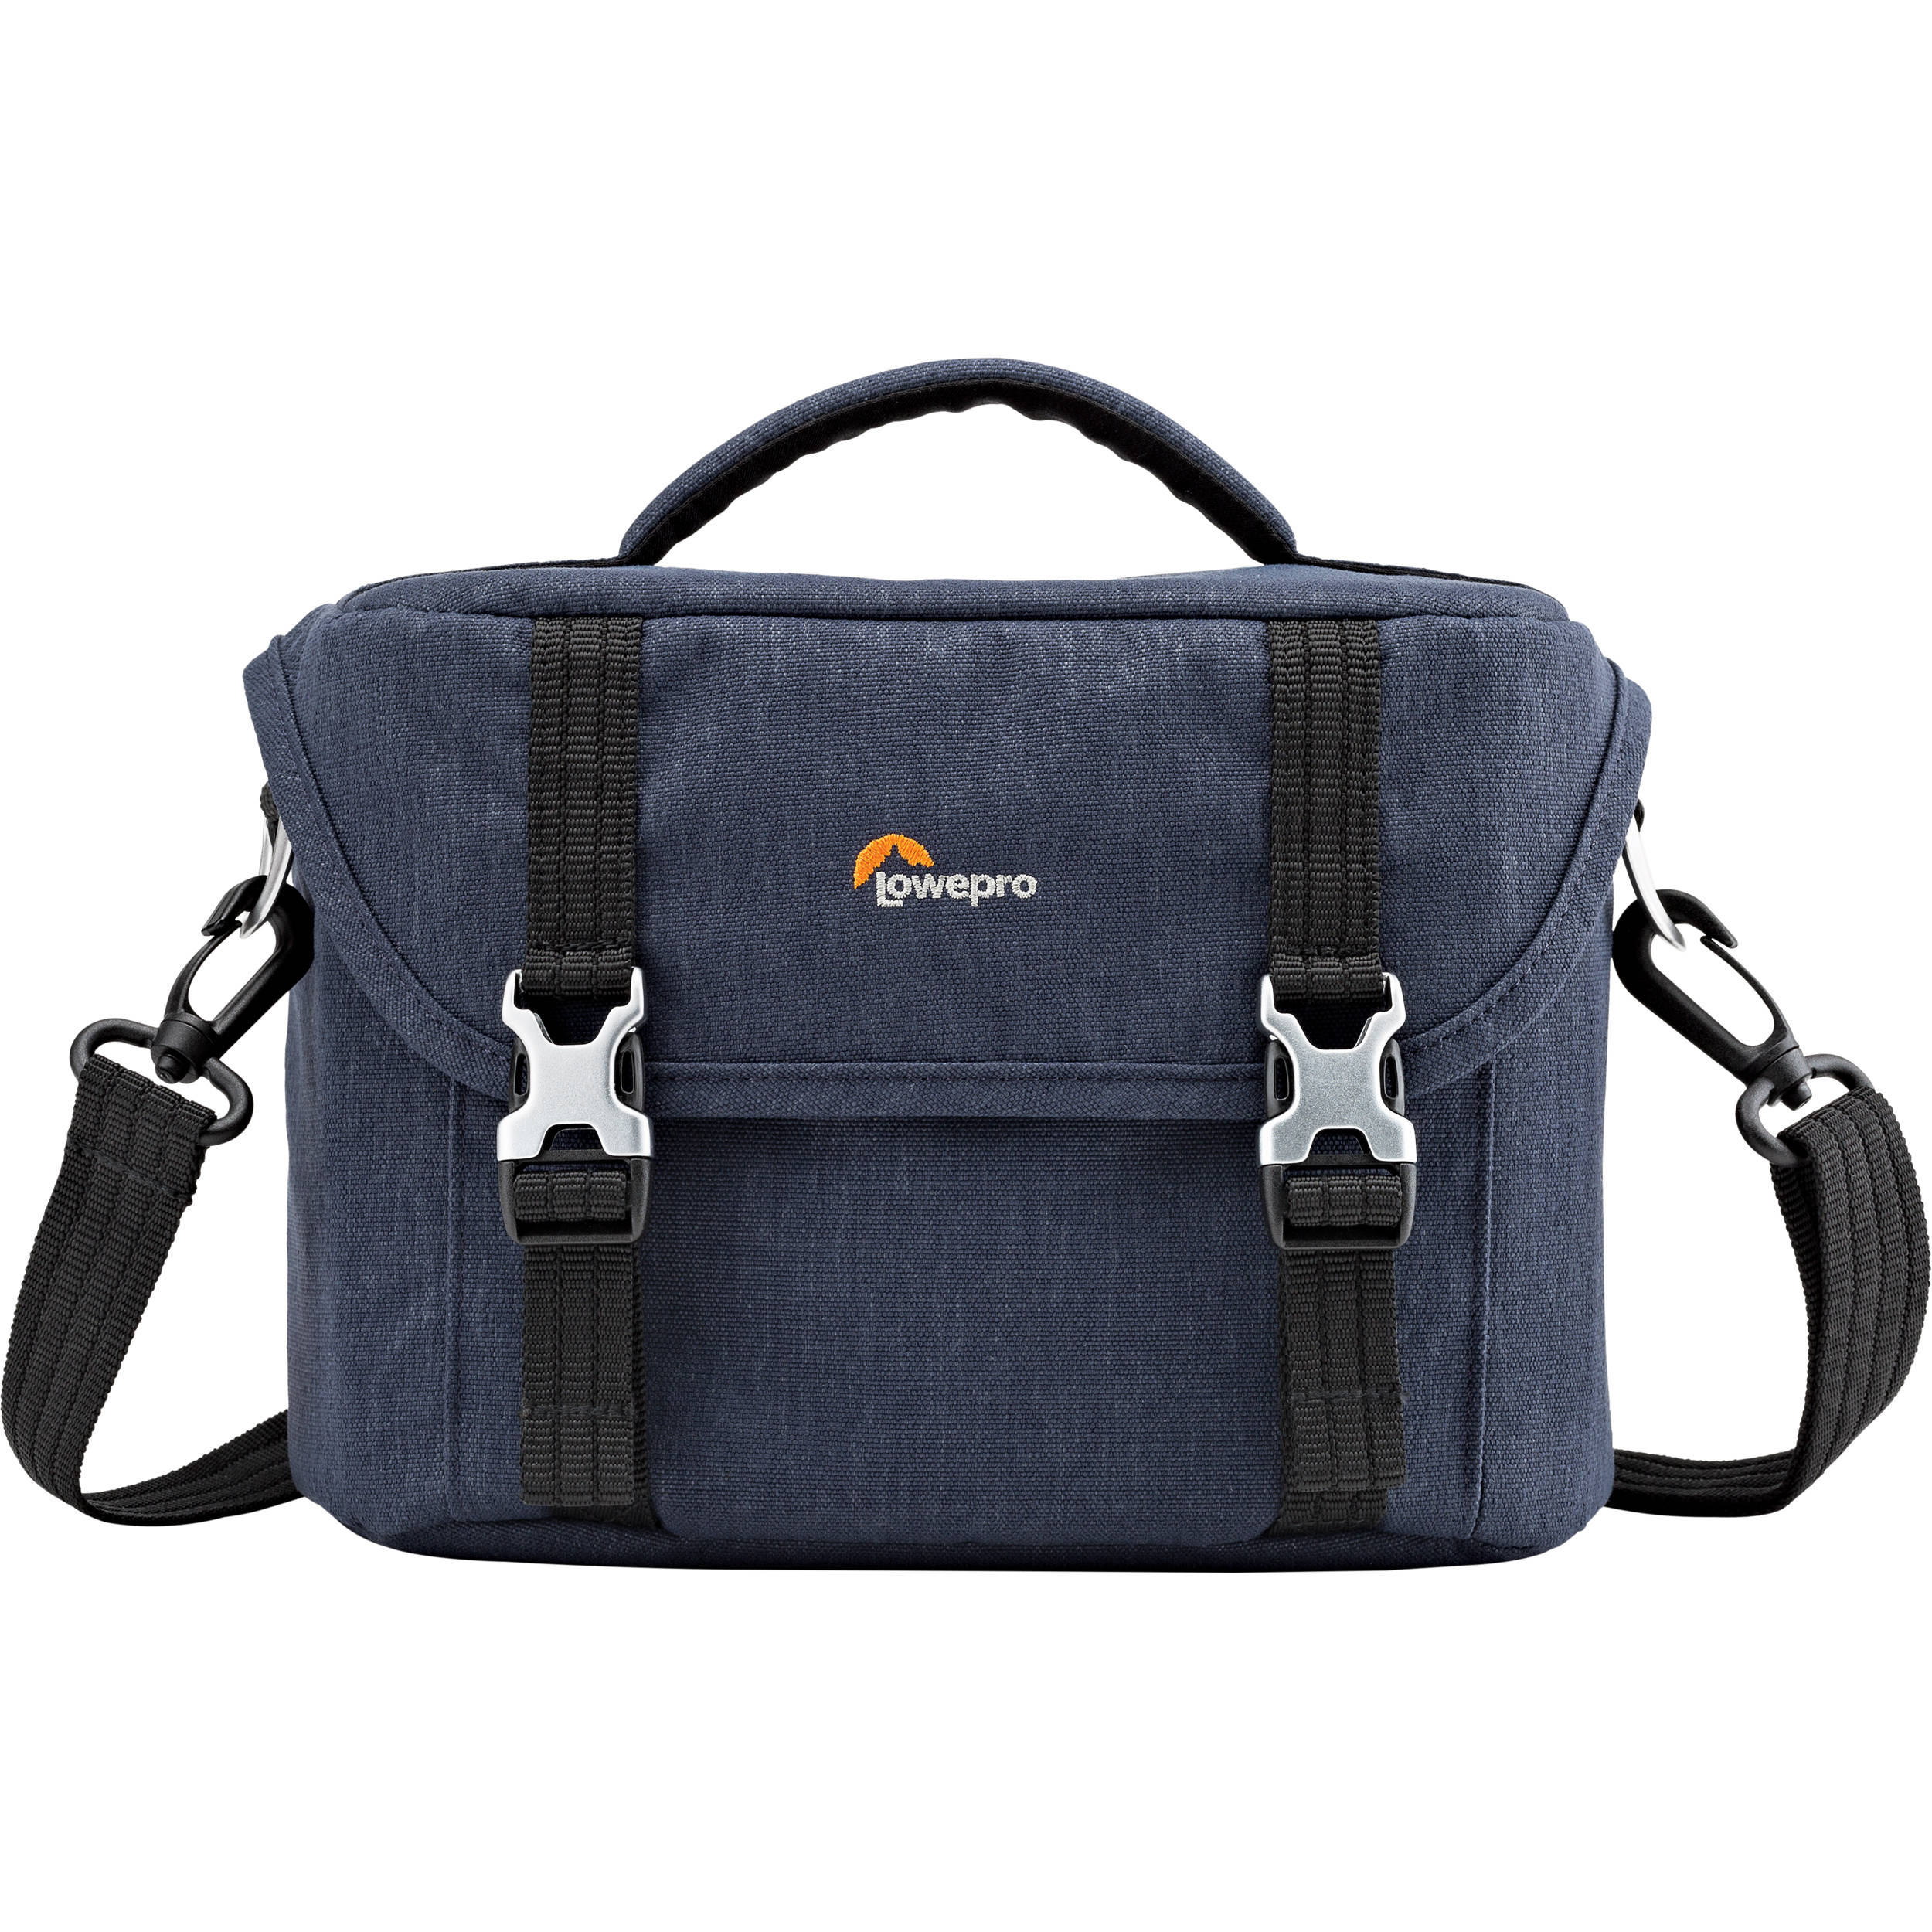 Lowepro Scout Sh 140 Aw Mirrorless Camera Bag Slate Blue